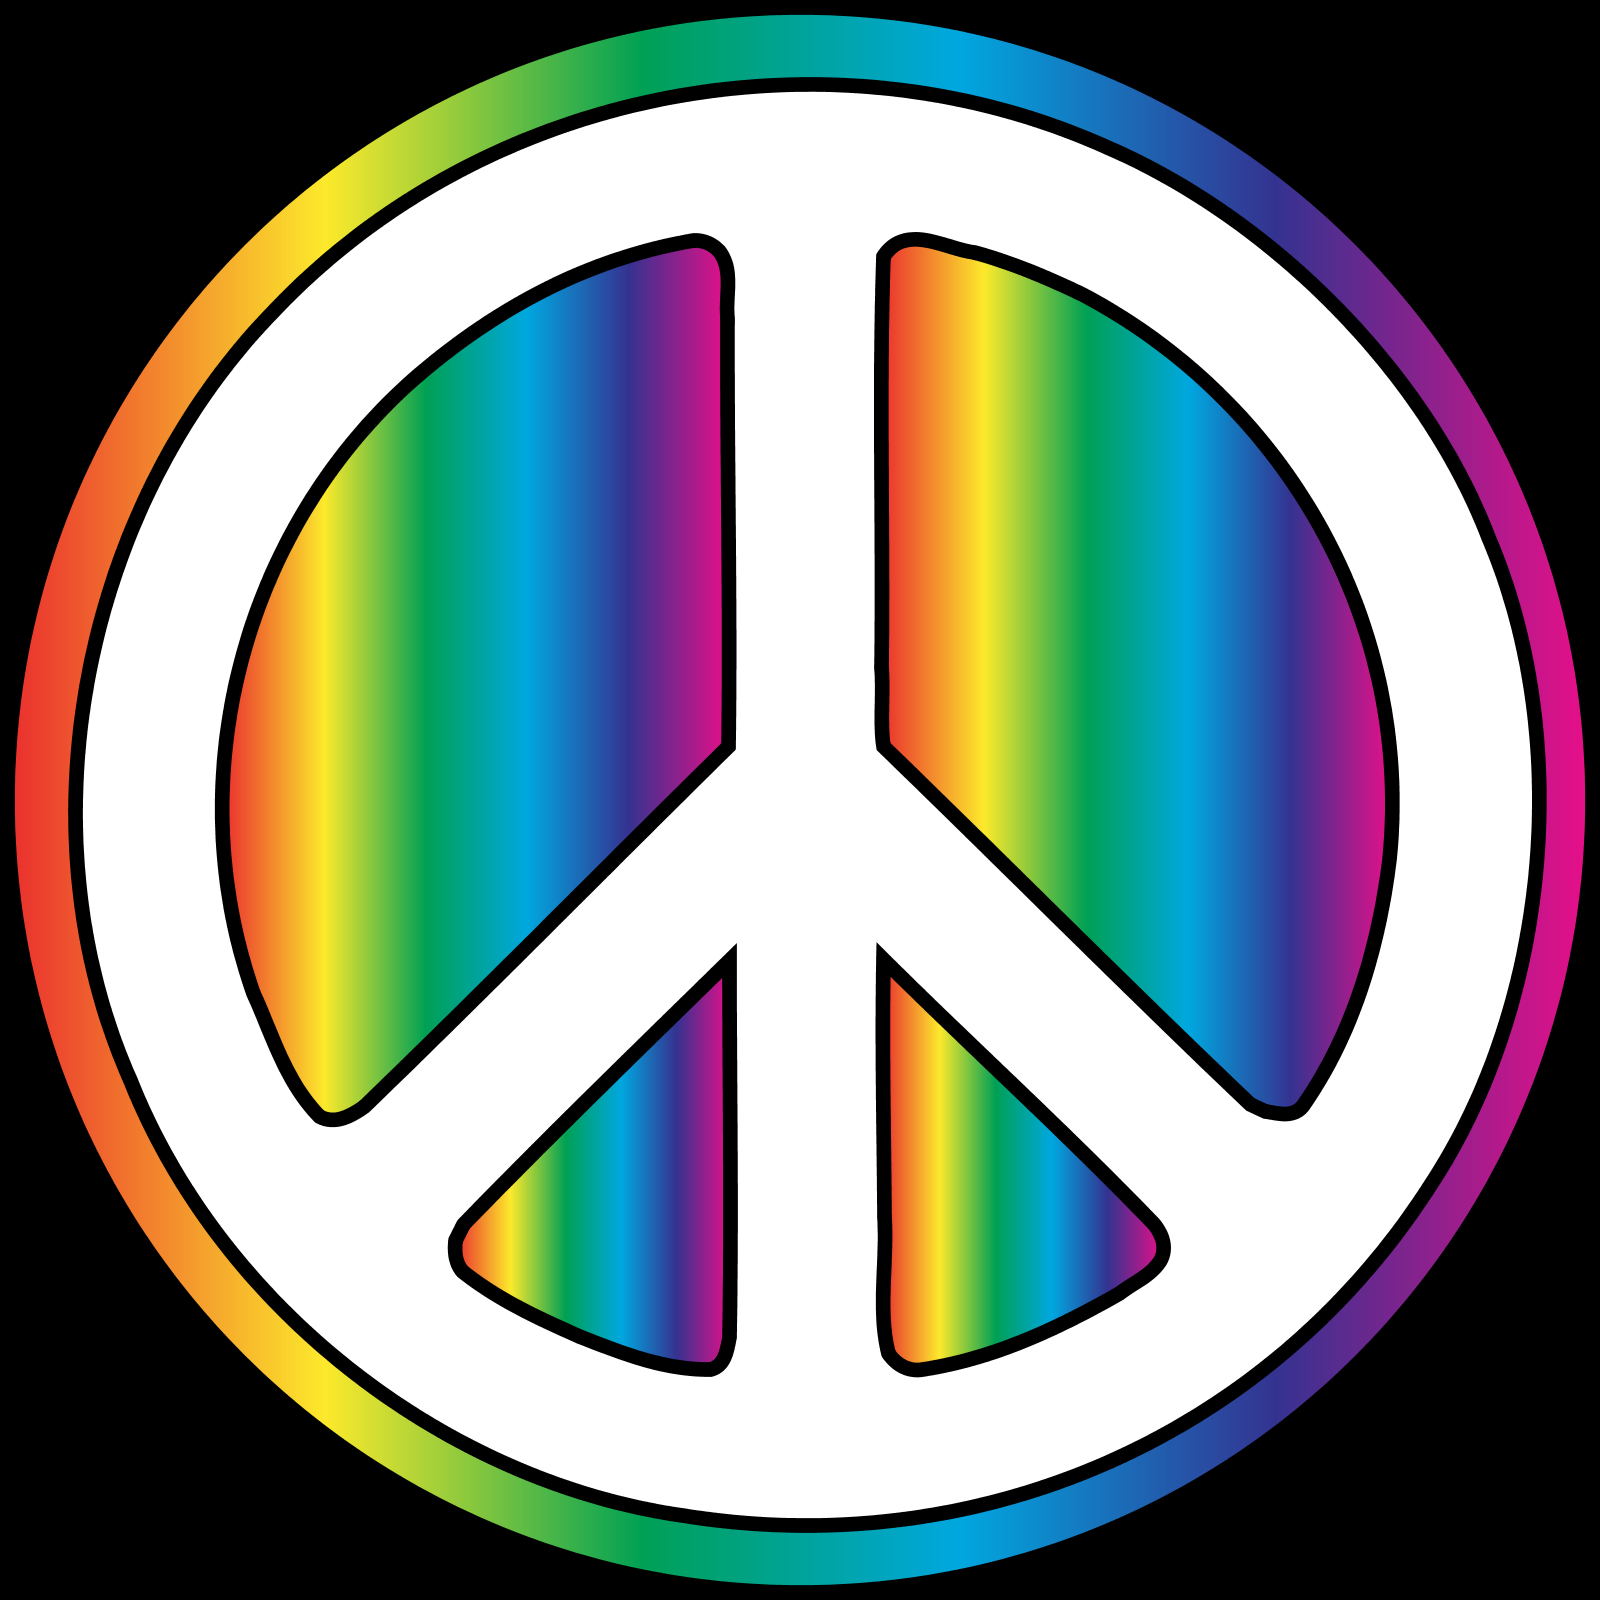 Colorful Iphone Wallpaper: Colorful Peace Sign Backgrounds